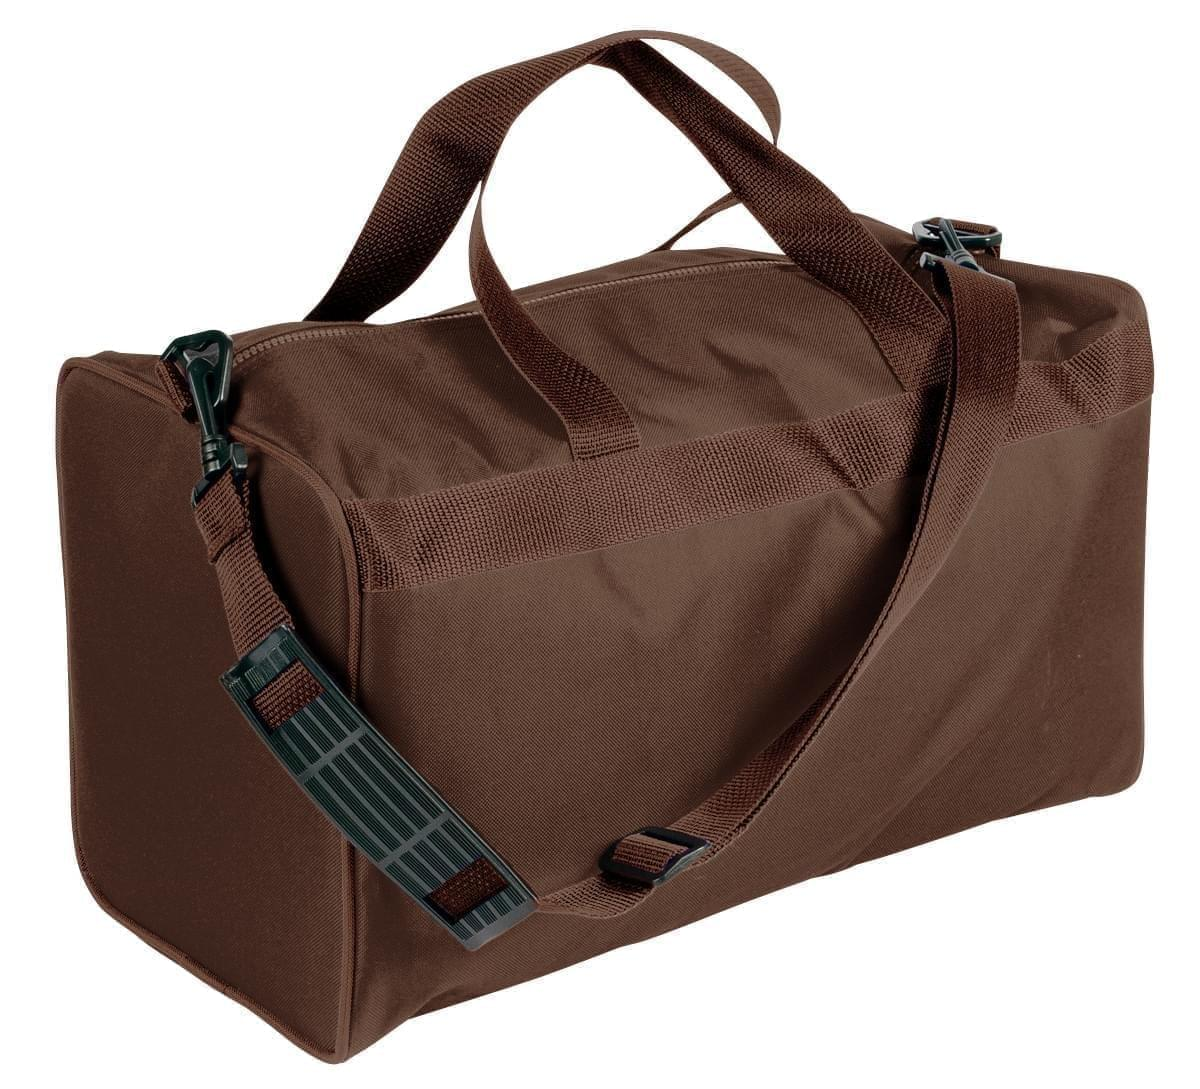 USA Made Nylon Poly Weekend Duffles, Brown-Brown, WLKX31AAPS